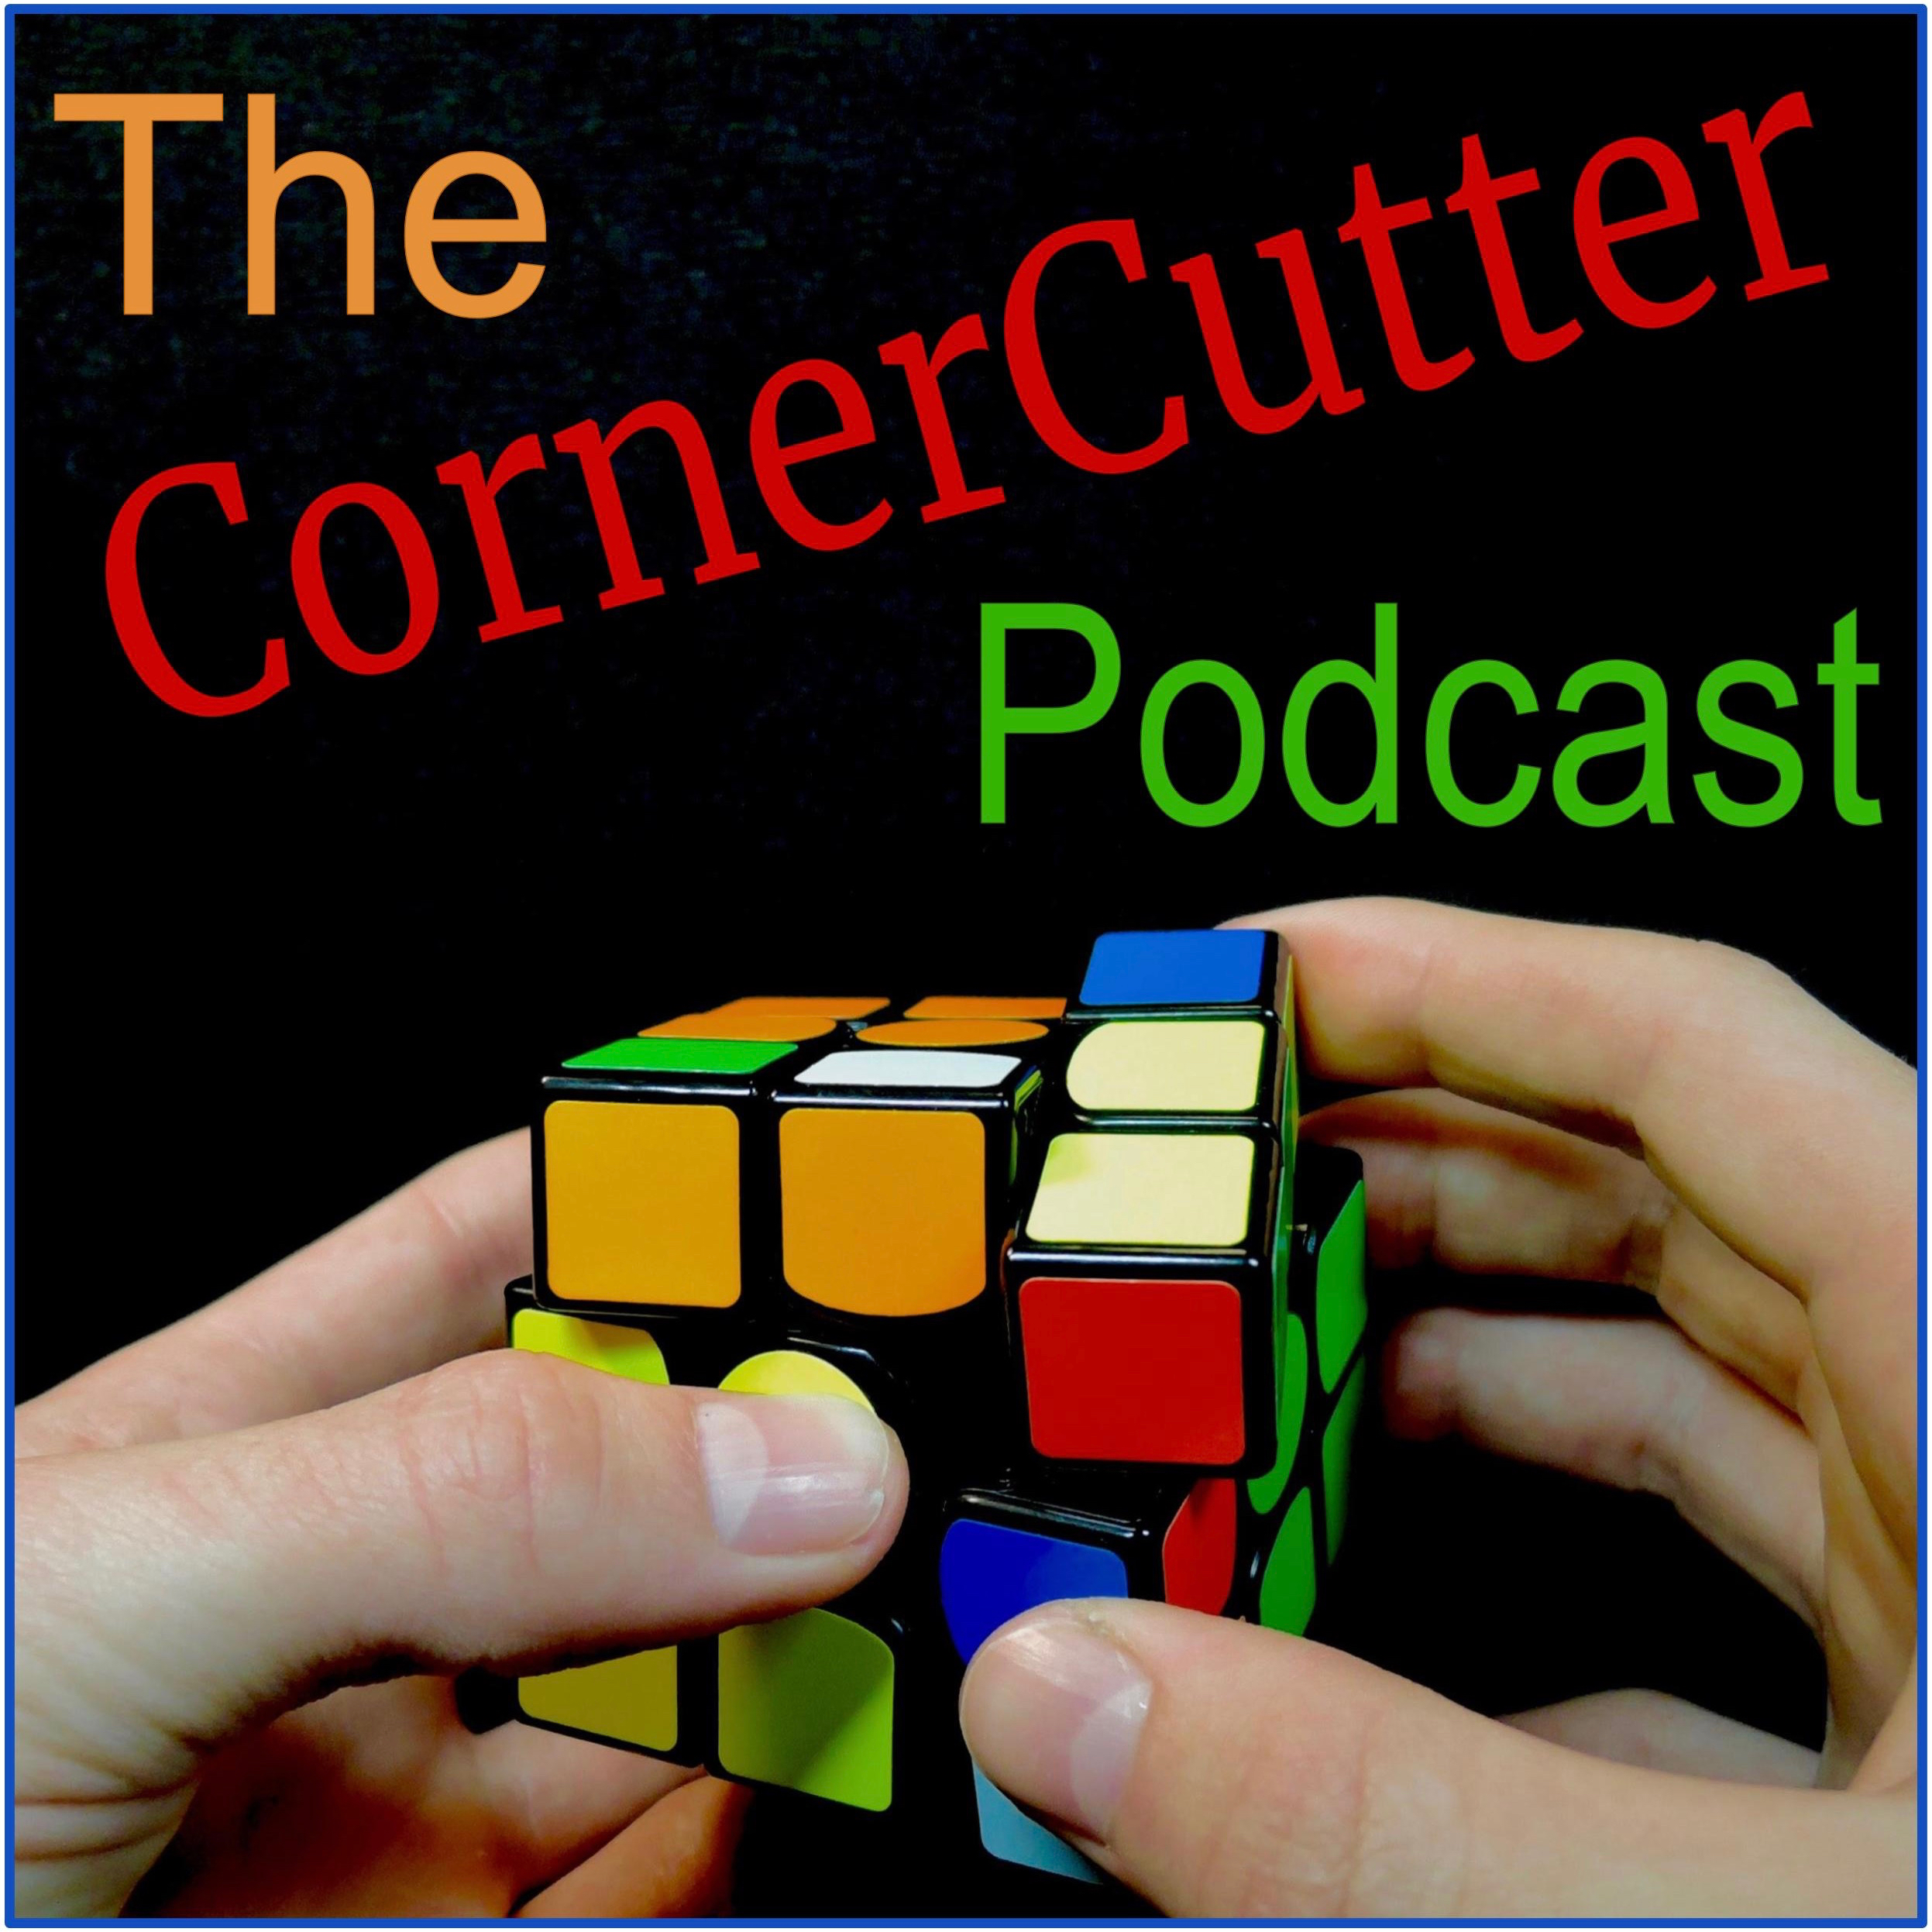 The CornerCutter Podcast A Weekly Speed Cubing Podcast